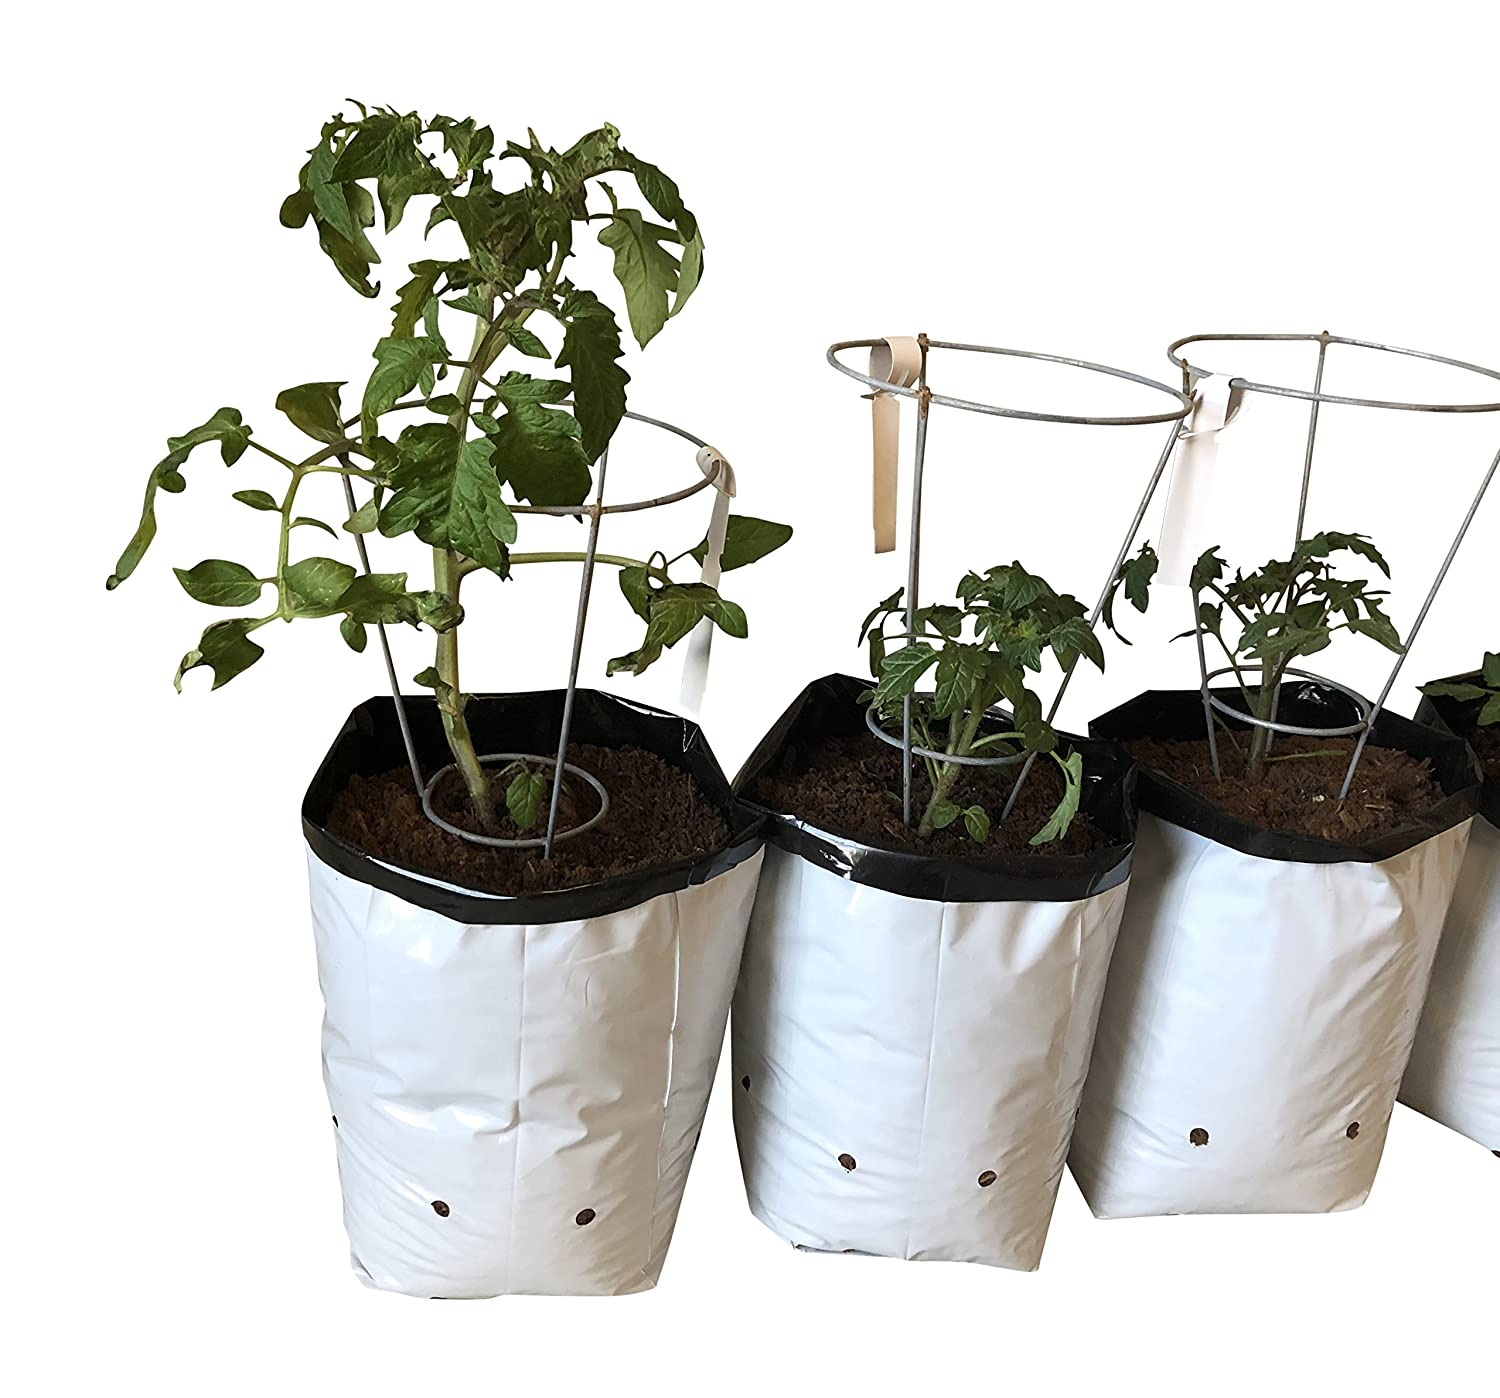 Amazon.com : Small Plant Garden Starter Kit- Mini Wire Tomato ...